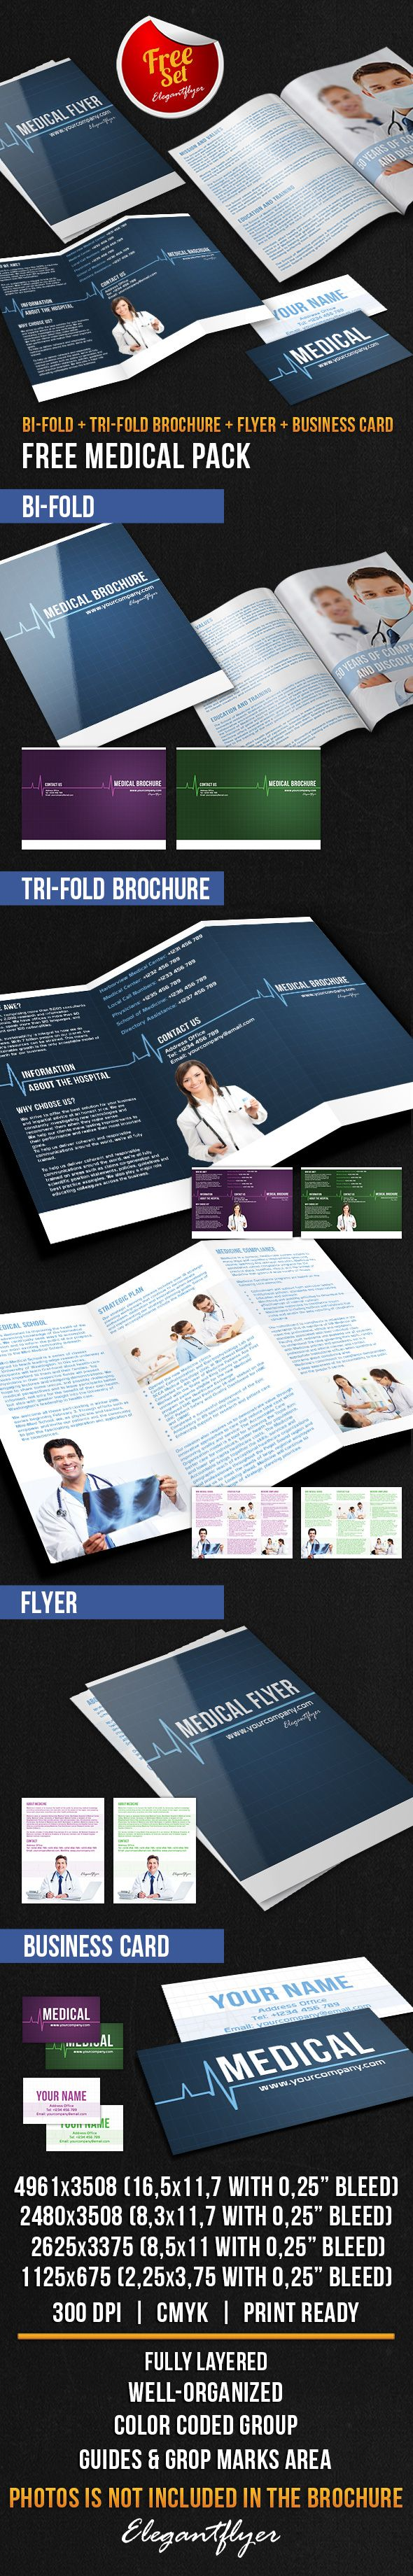 medical brochure pack free psd template